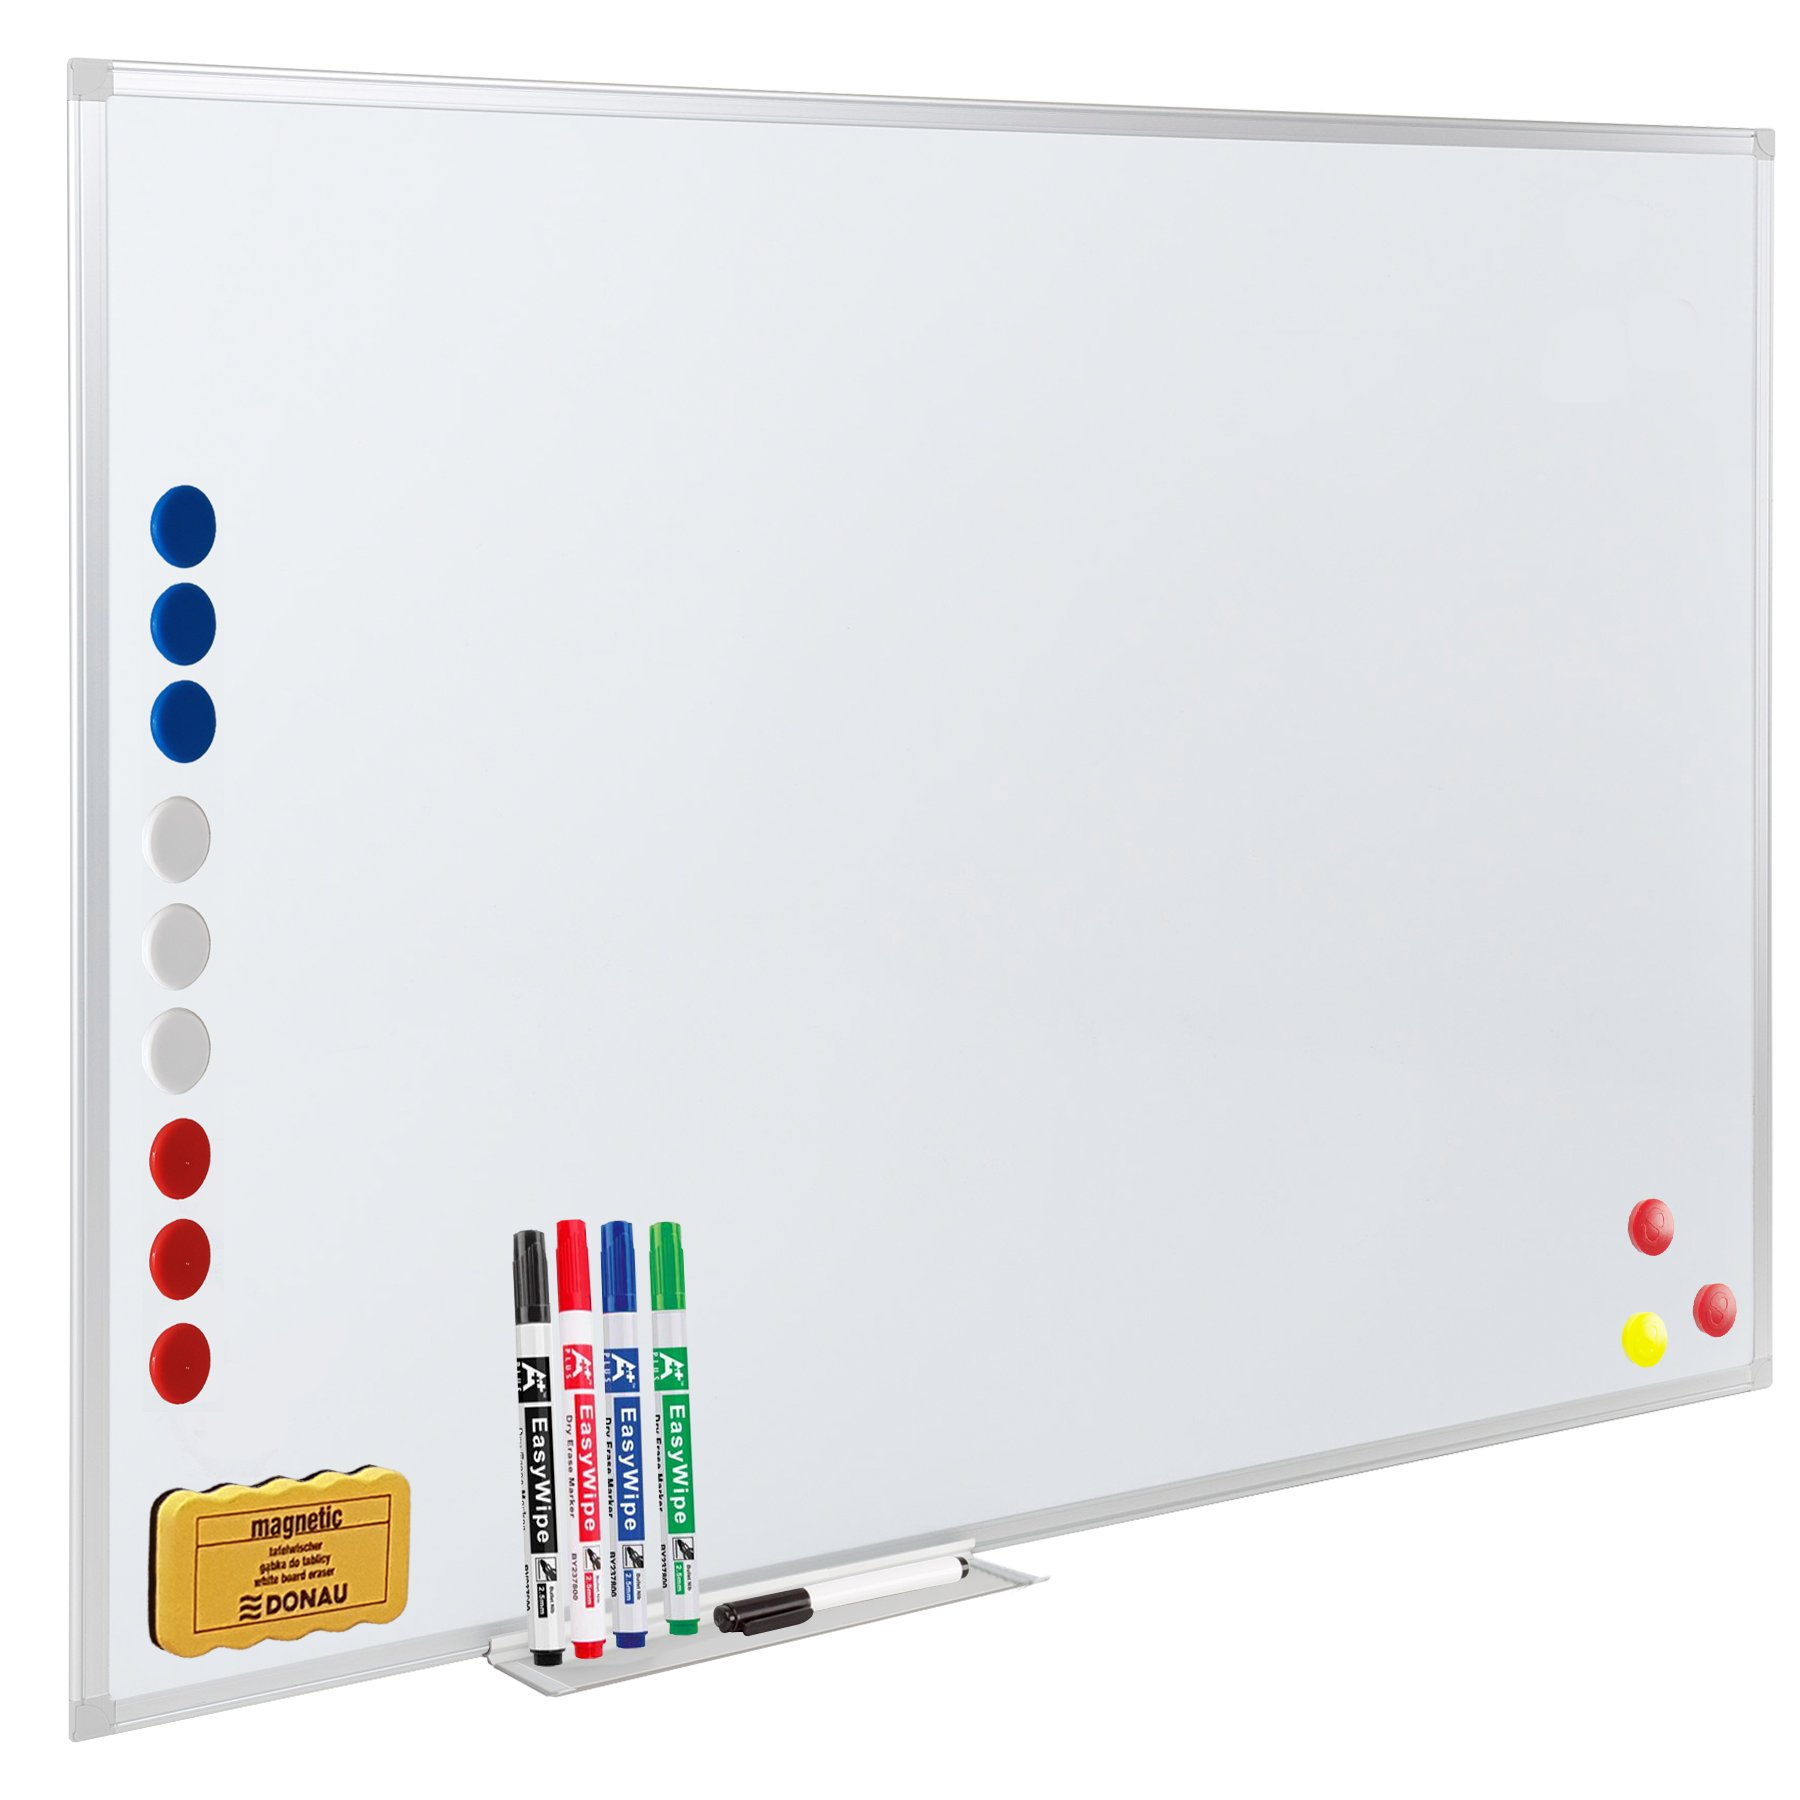 Item Magnetic Board with backlight 90x60 FREEBIES!